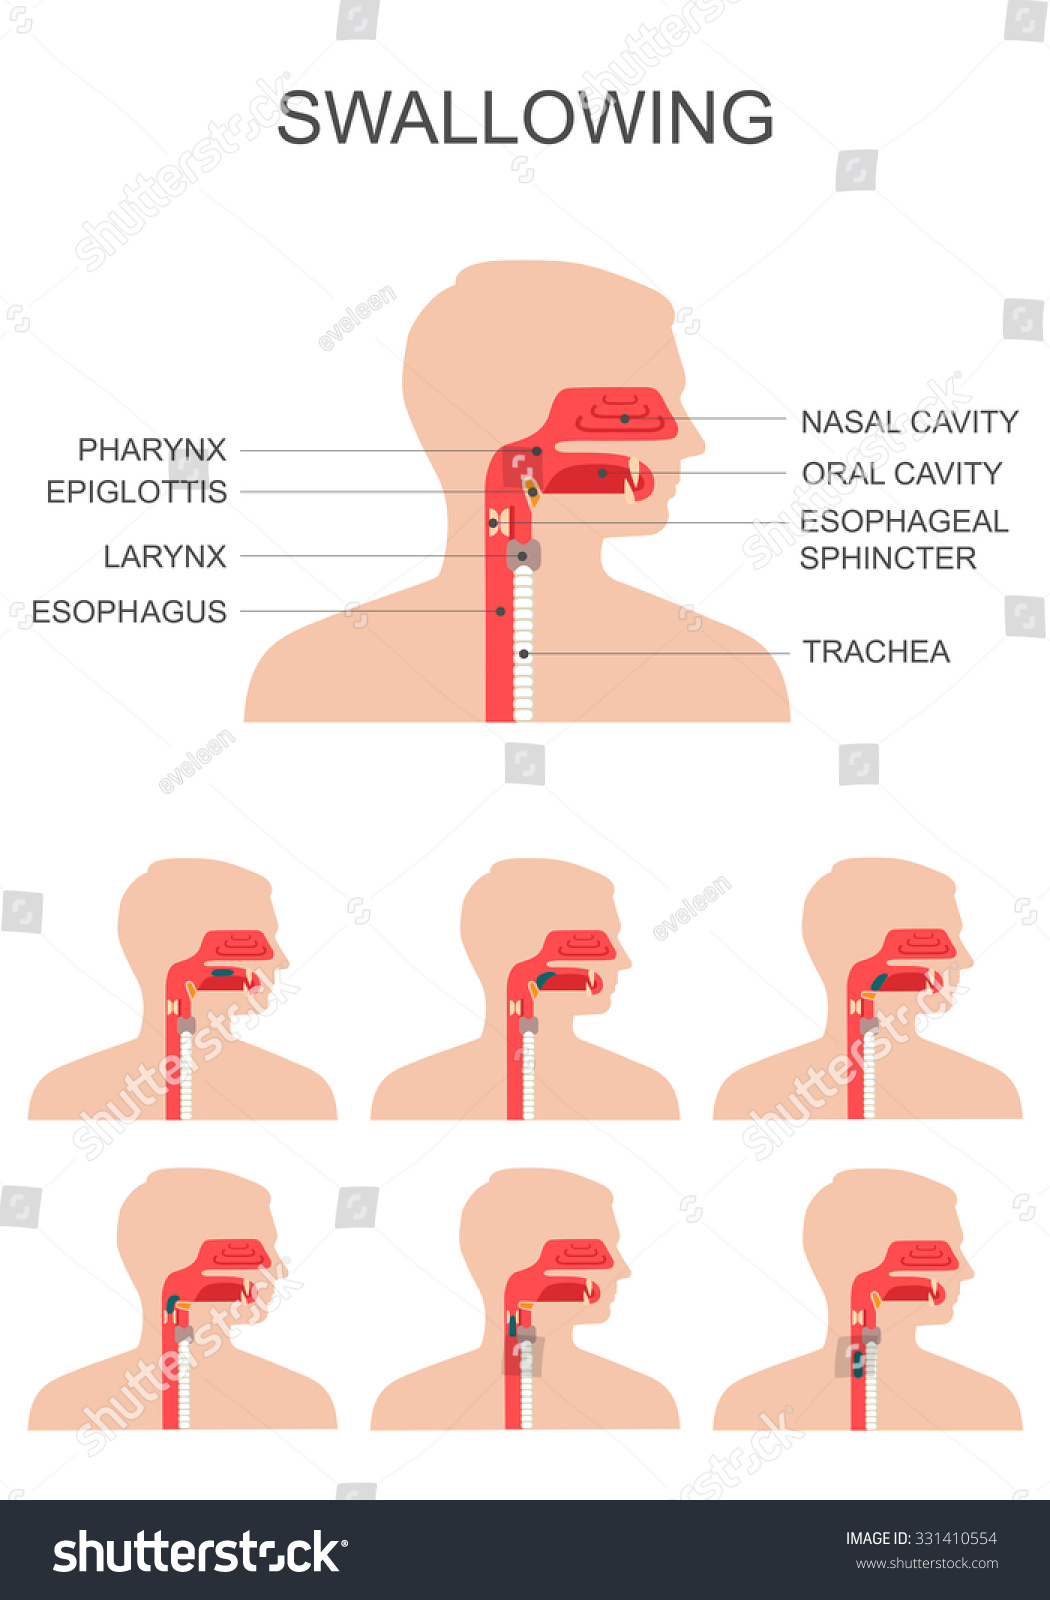 Swallowing Process Nose Throat Anatomy Medical Stock Vector